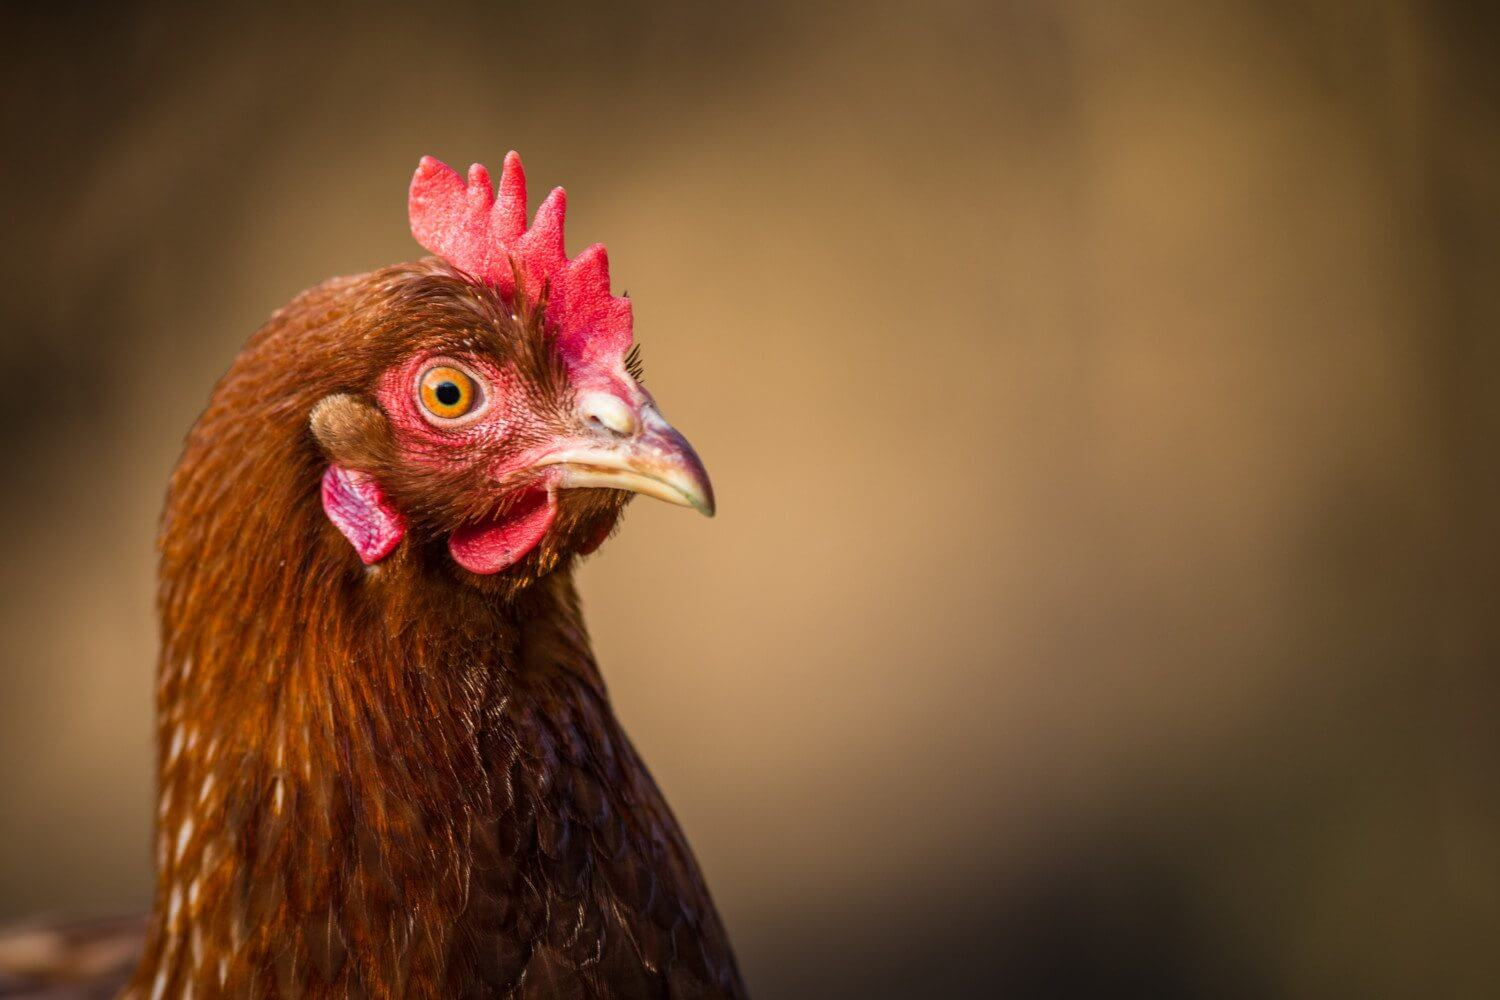 This Woman Makes $50K A Year By Creating Clothes For Chickens